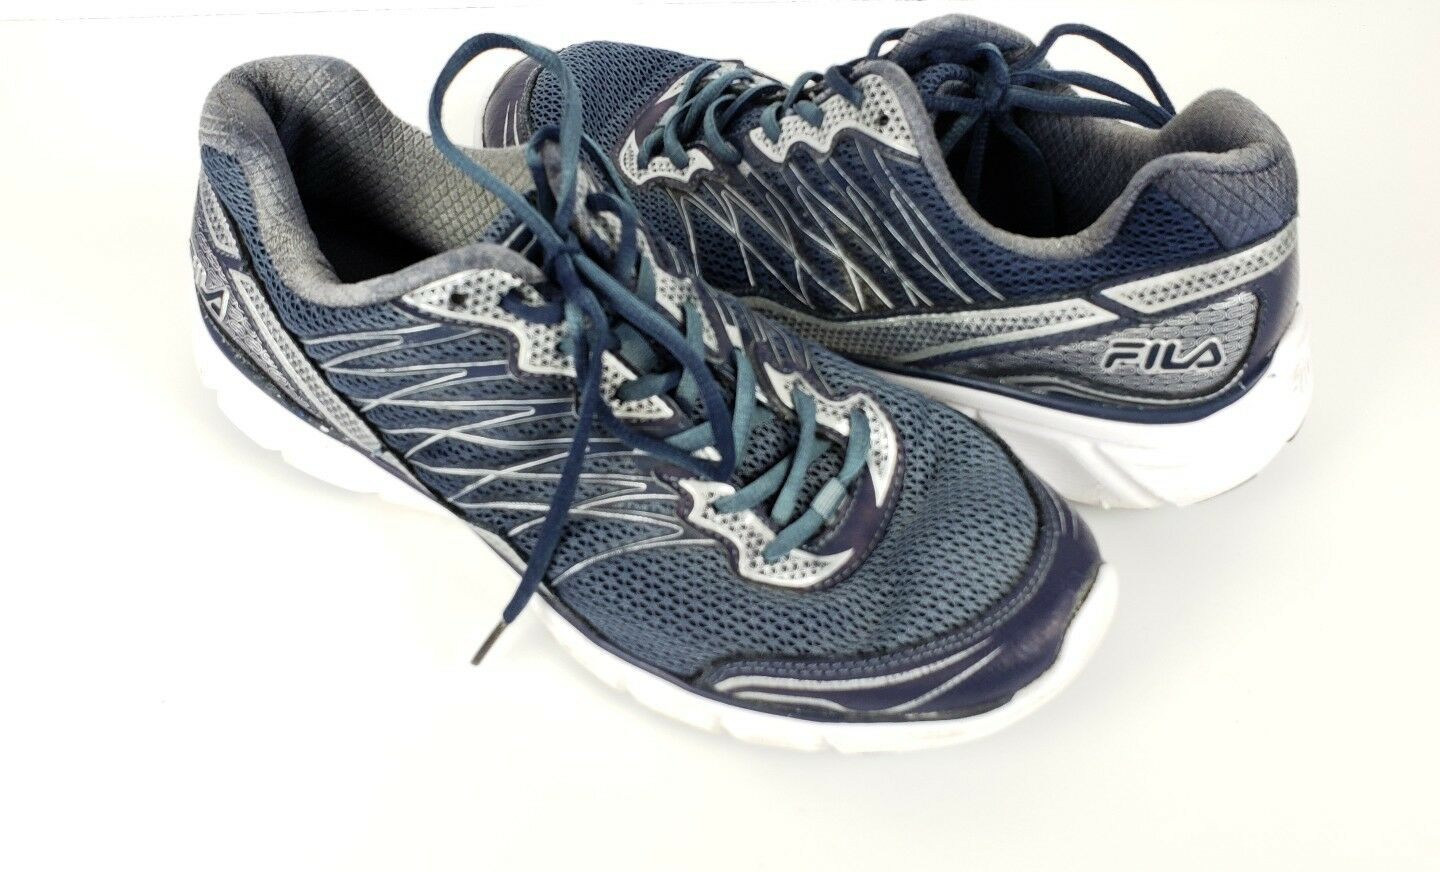 FILA  1SR20961-411 Men's Gray/Blue Running Walking Athletic Shoes size 10.5 The latest discount shoes for men and women